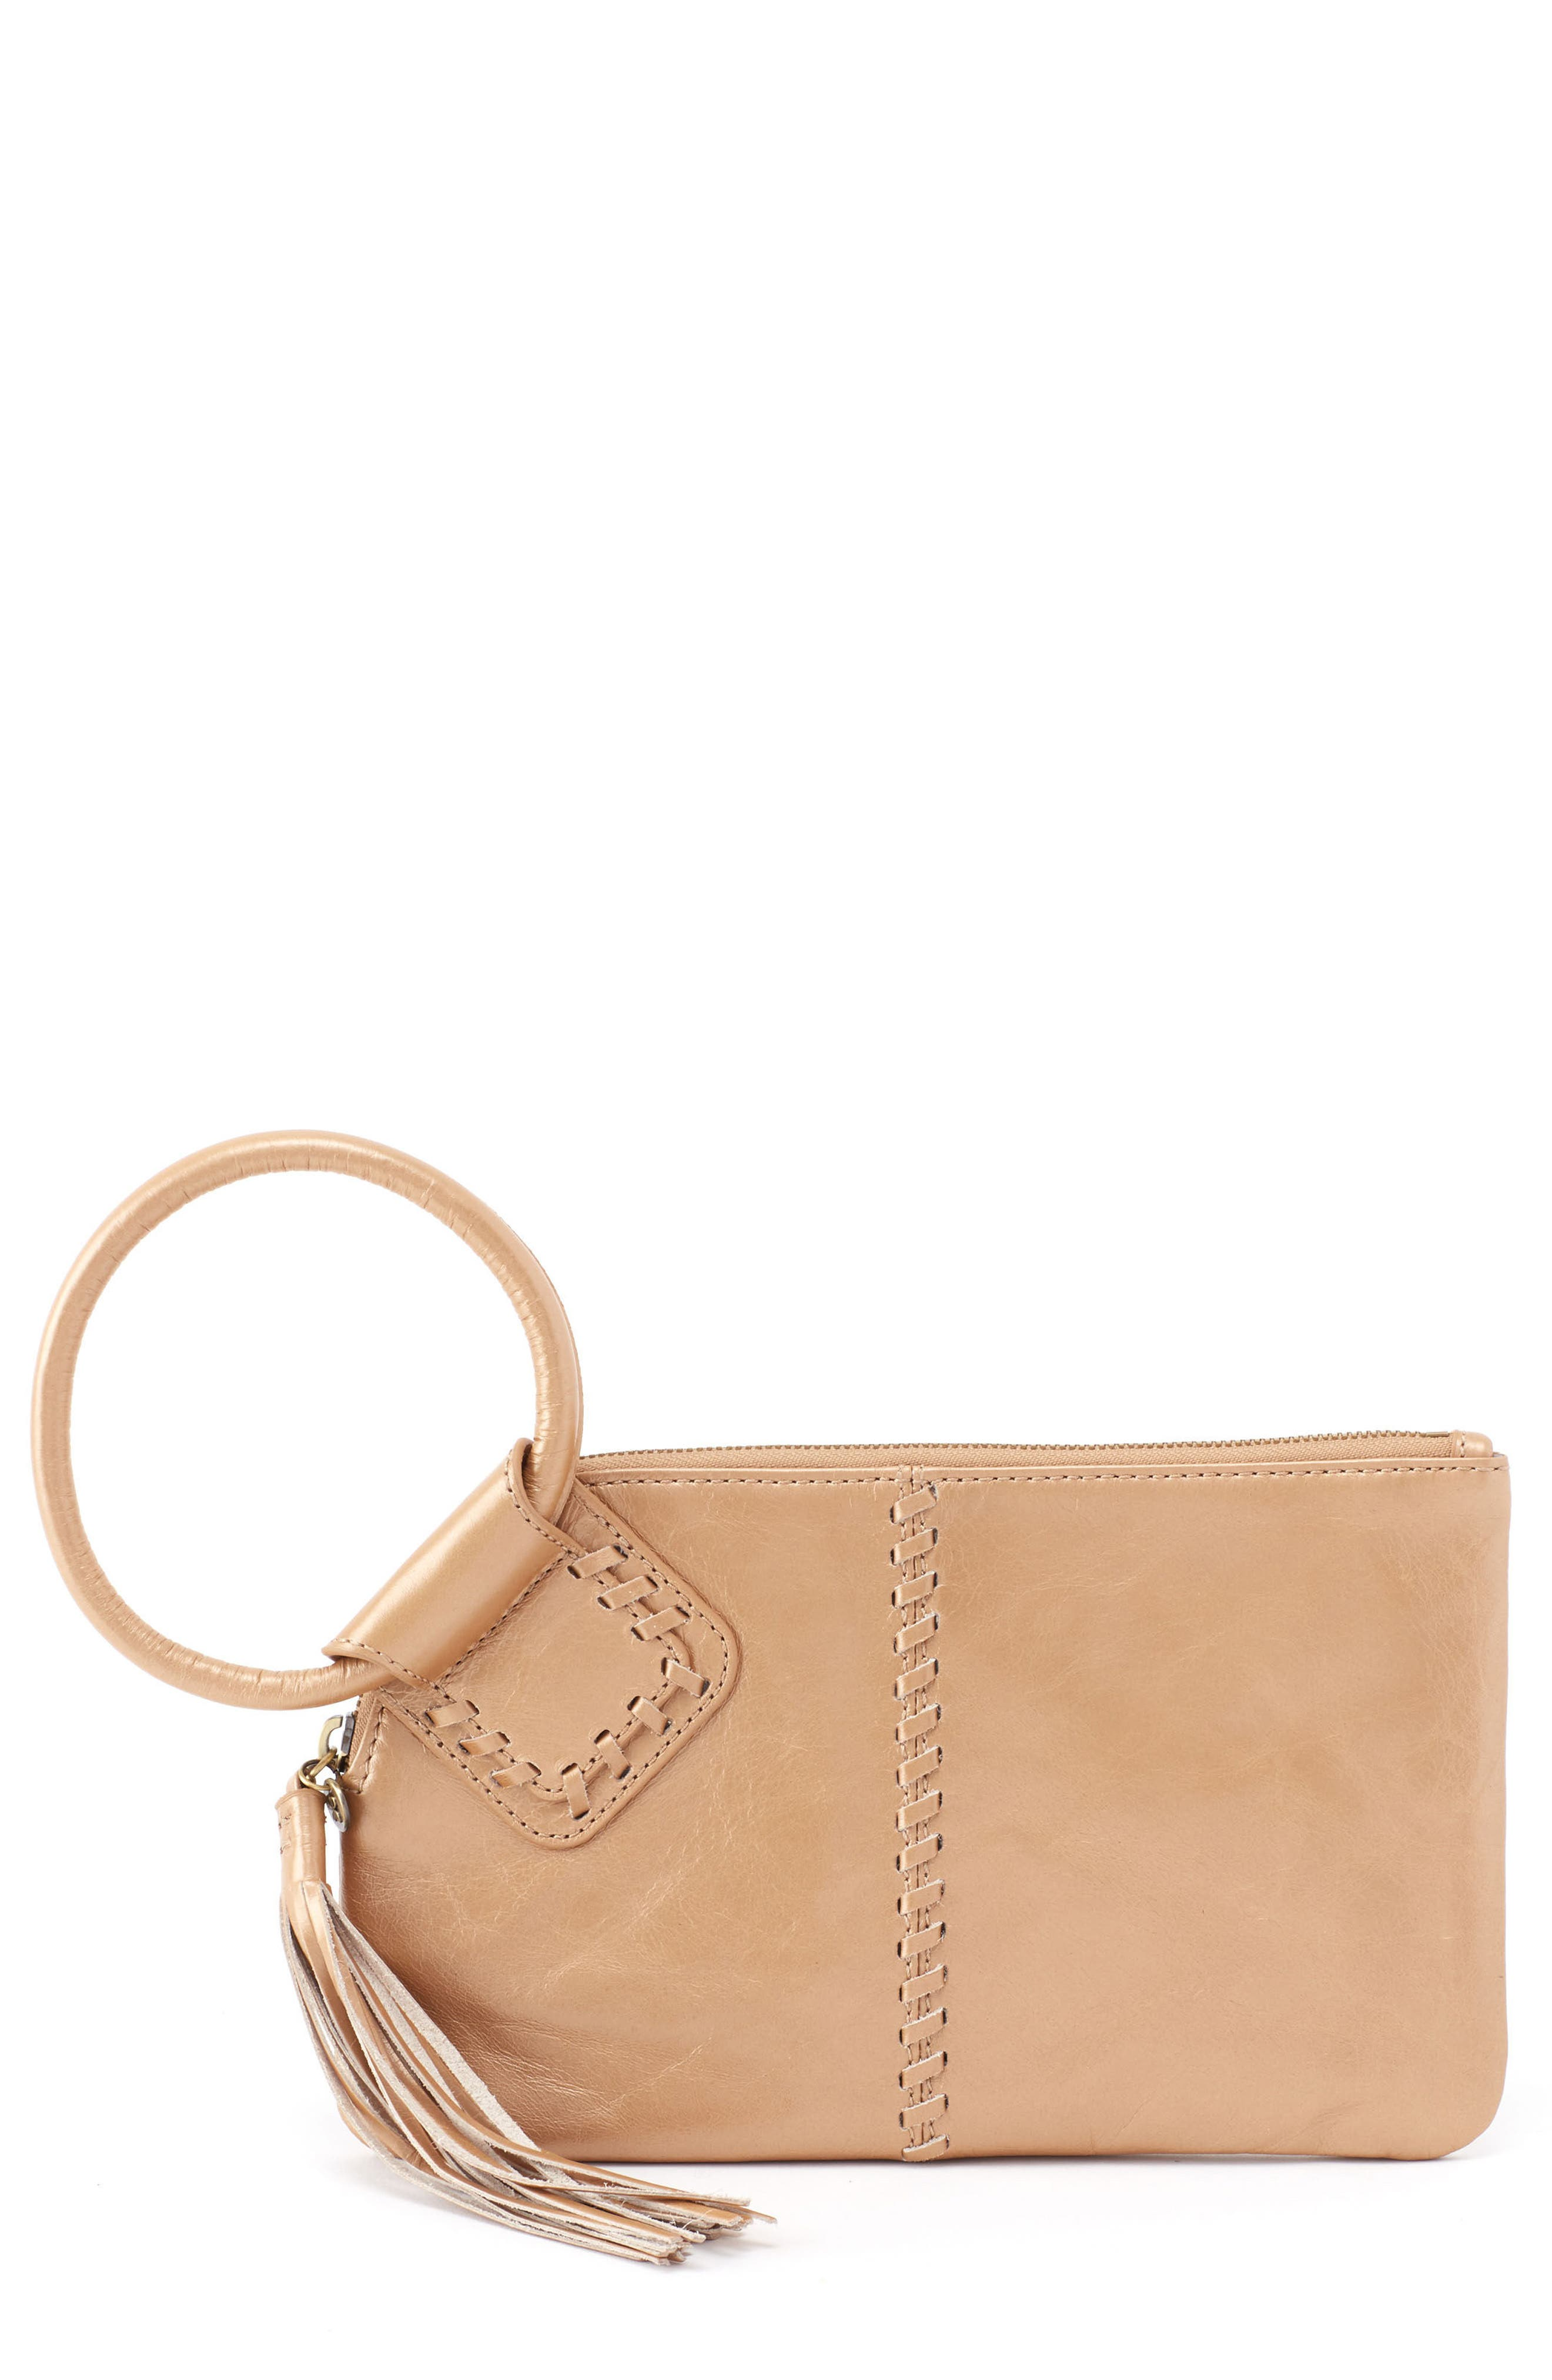 Sable Calfskin Leather Clutch,                         Main,                         color, Gold Dust